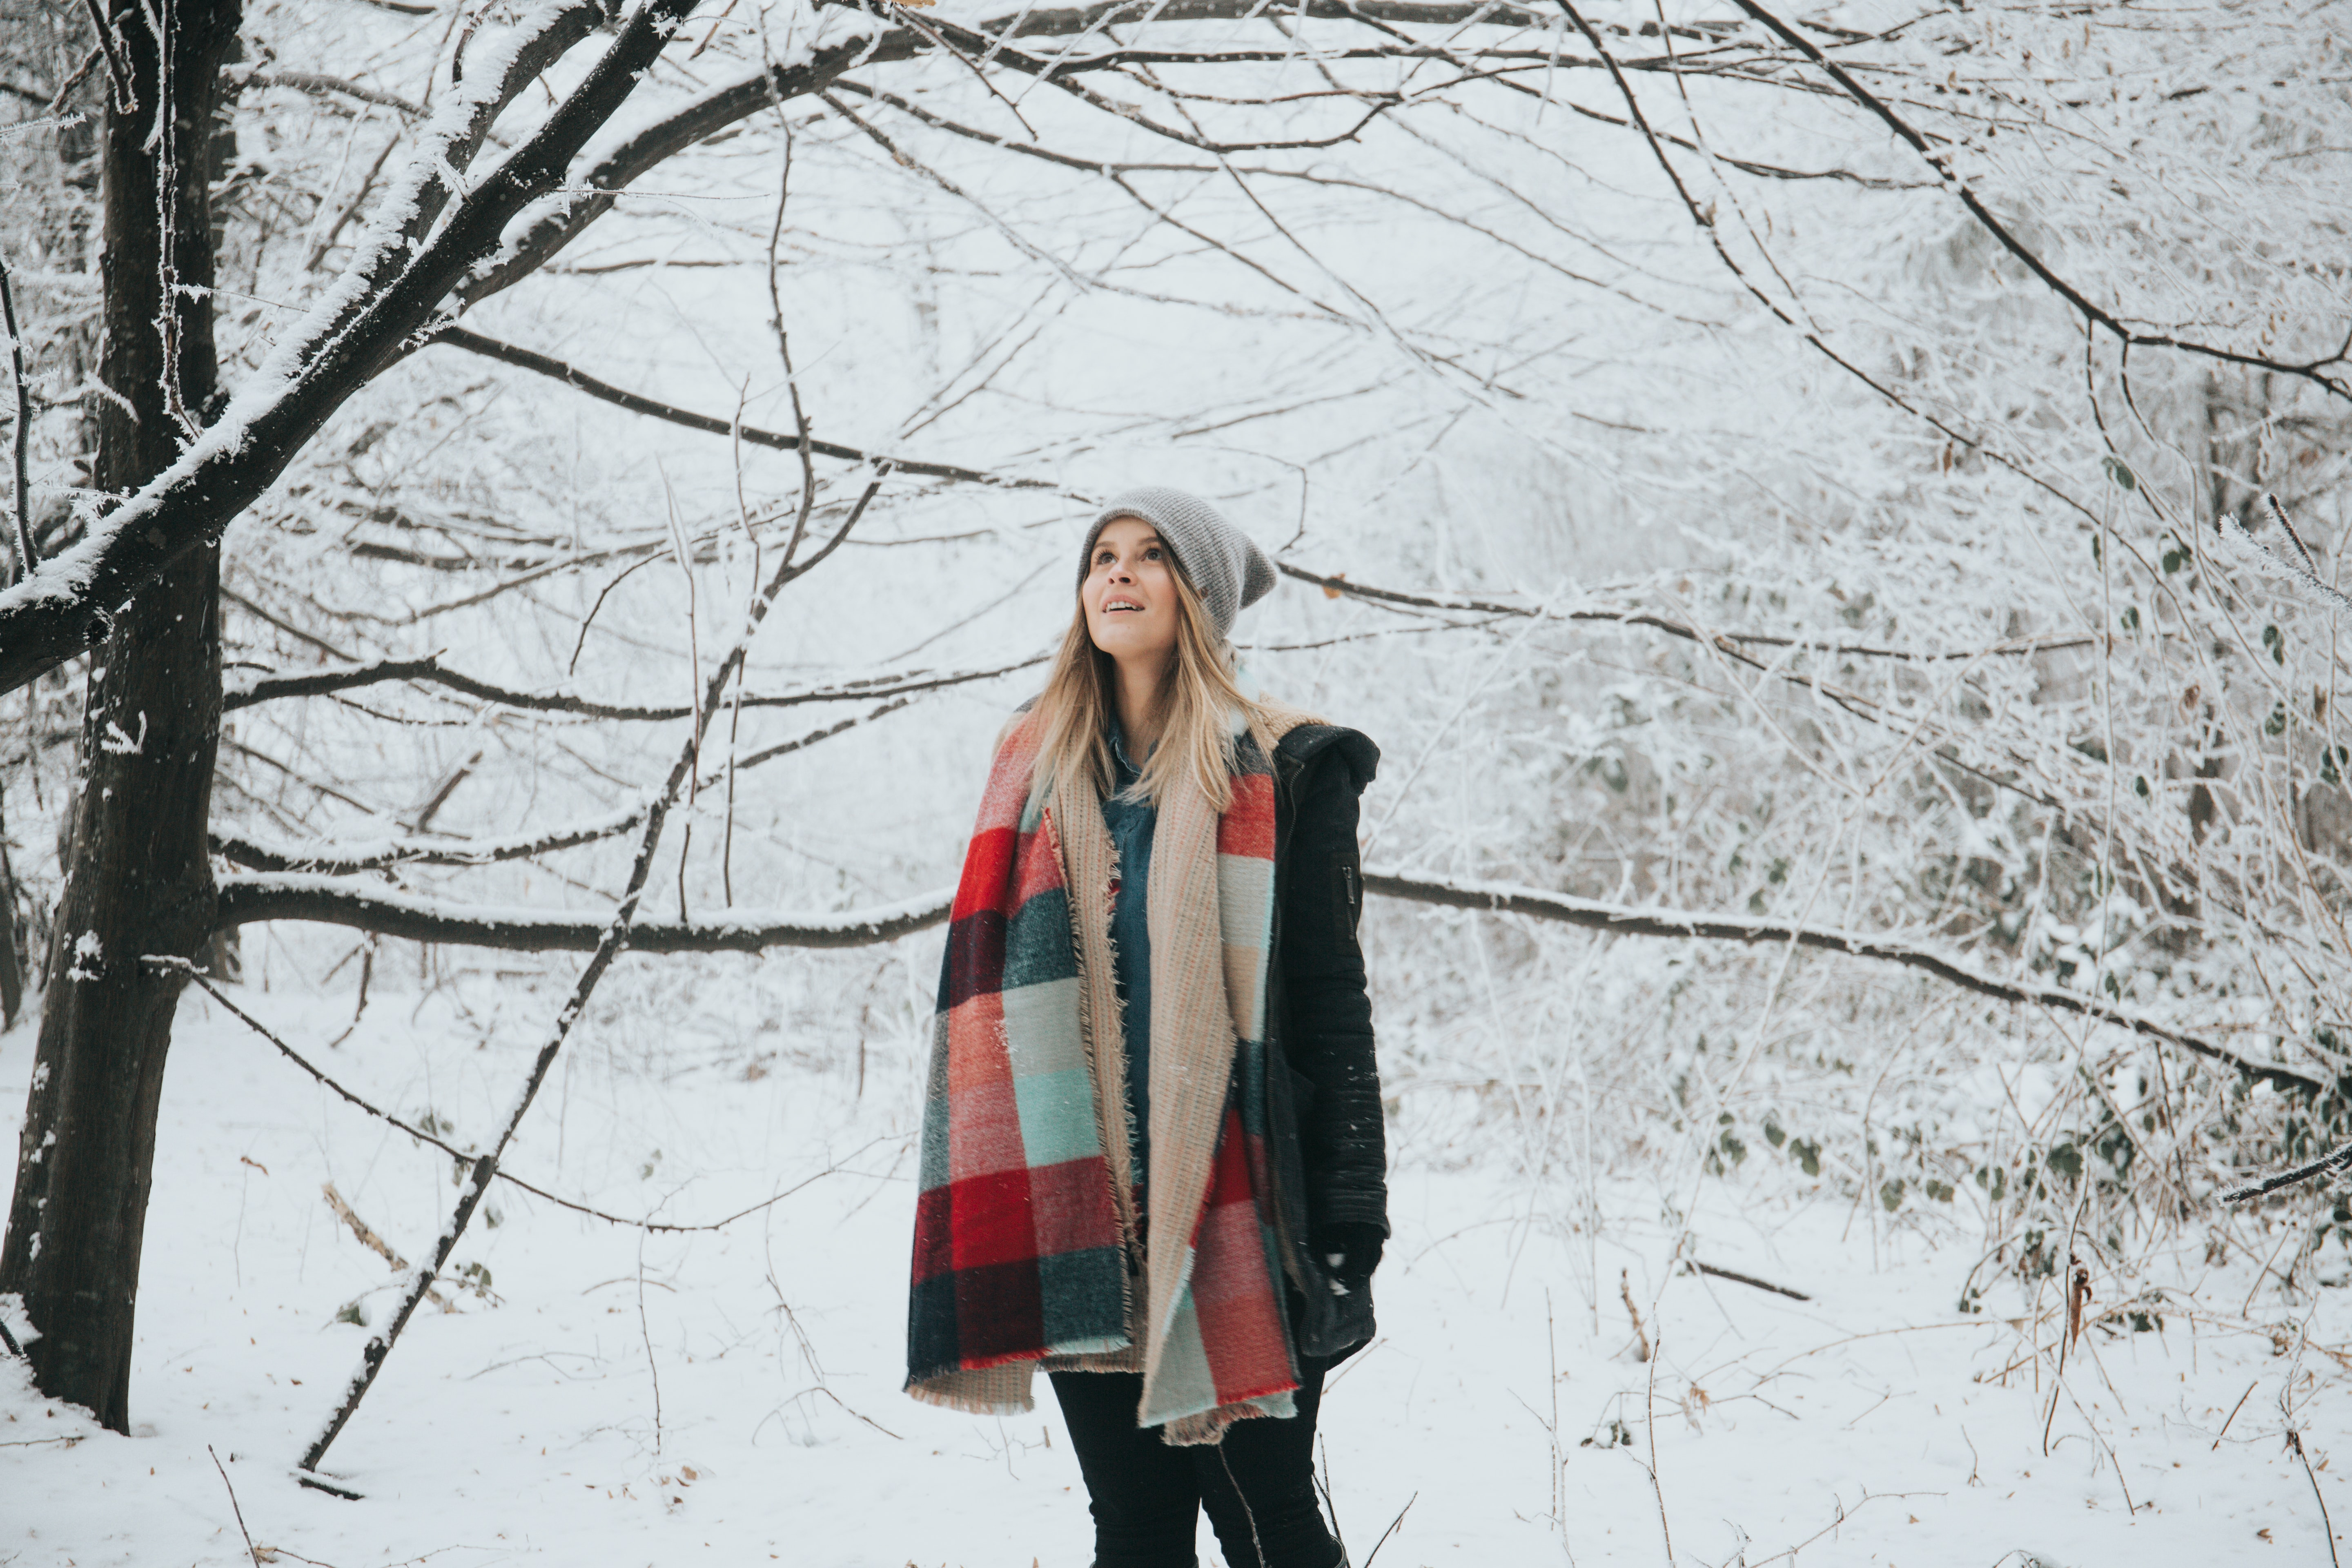 woman wearing jacket outdoor with forest filled with snow